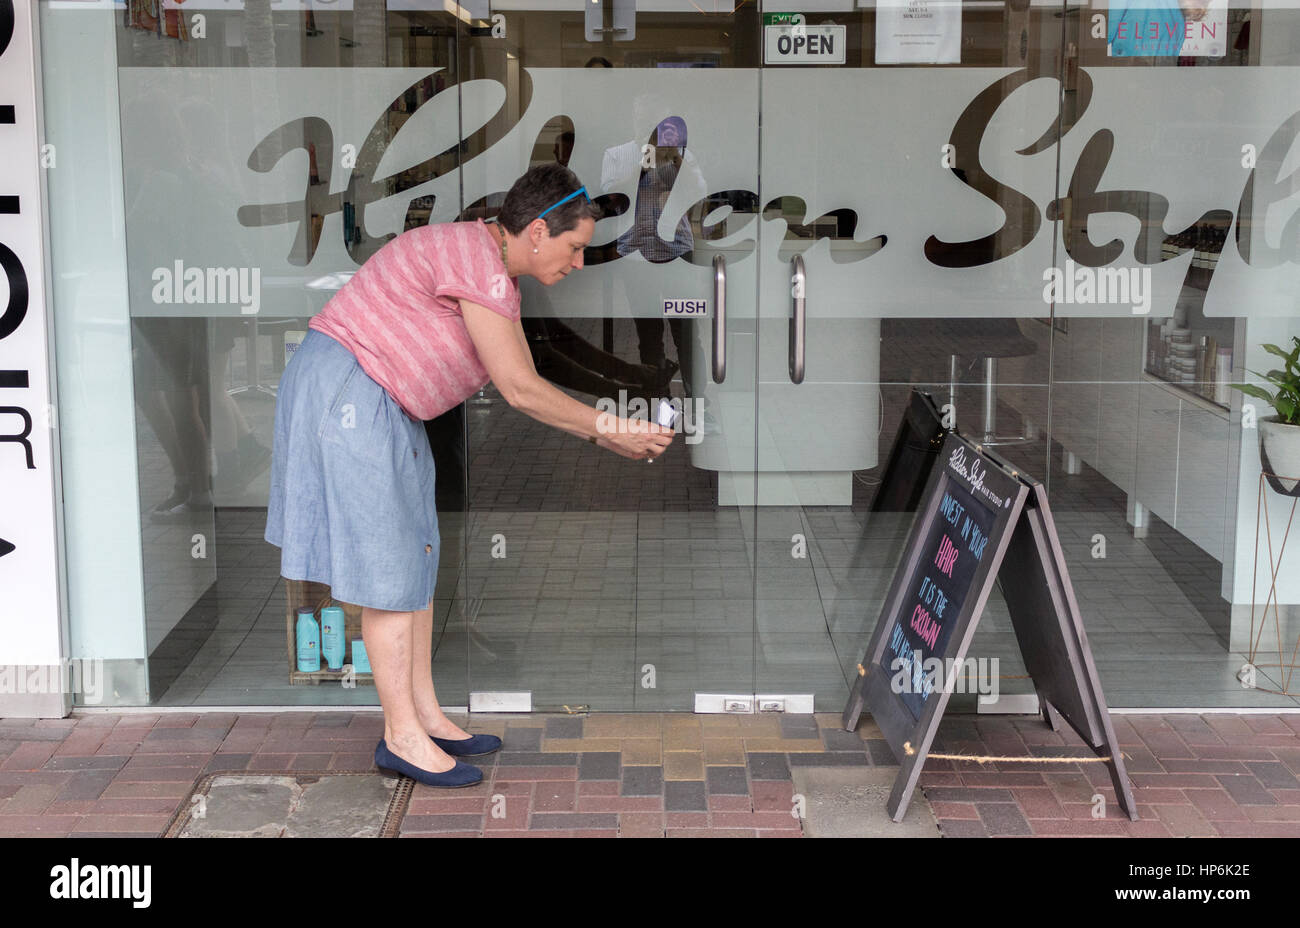 Woman with short hair is taking a photo of a funny sandwich board on the street 'Invest in your hair' - Stock Image